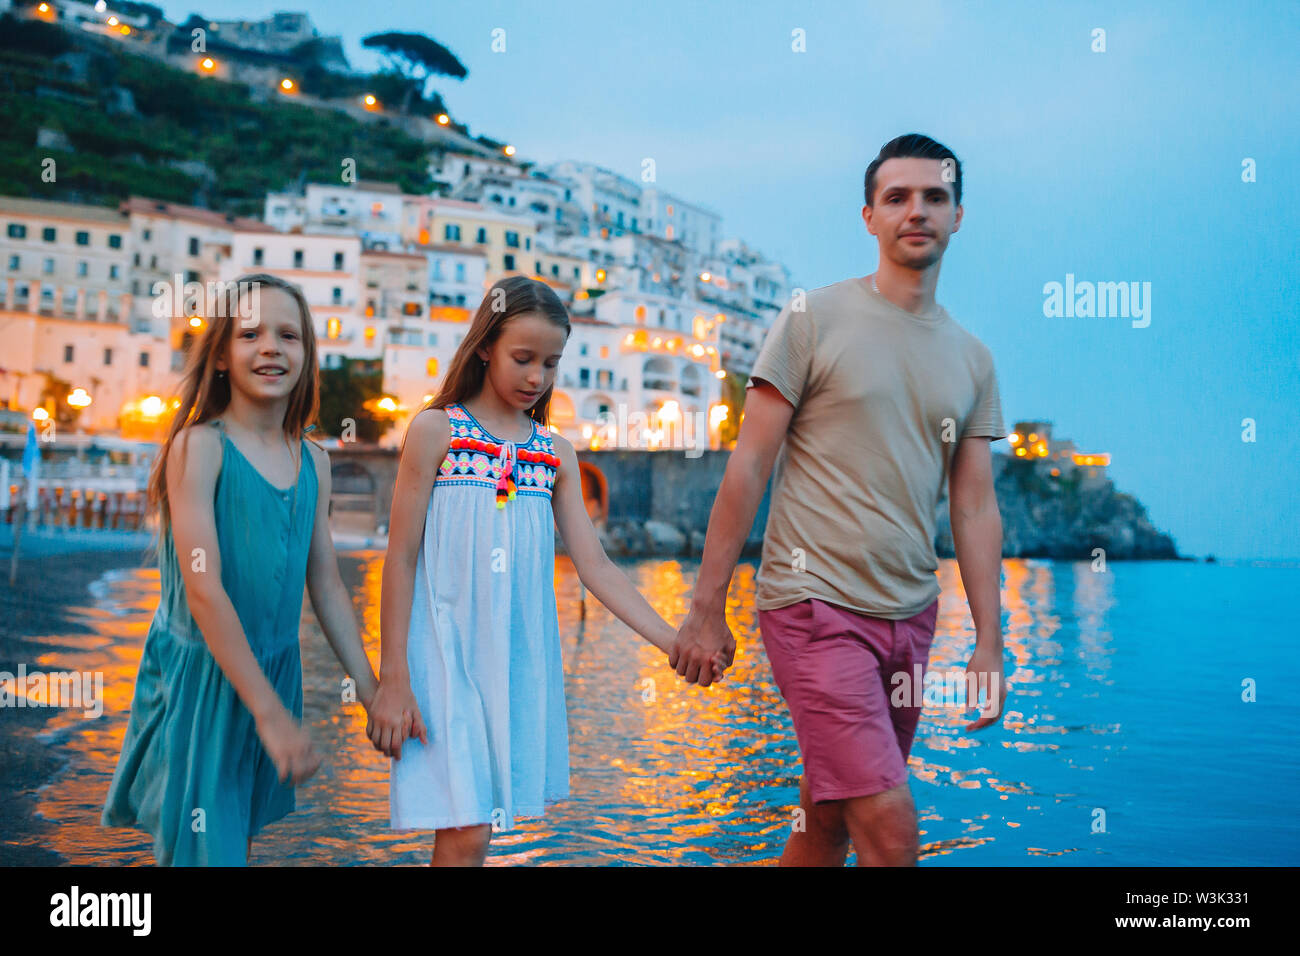 Adorable little girl on sunset in Amalfi town in Italy - Stock Image